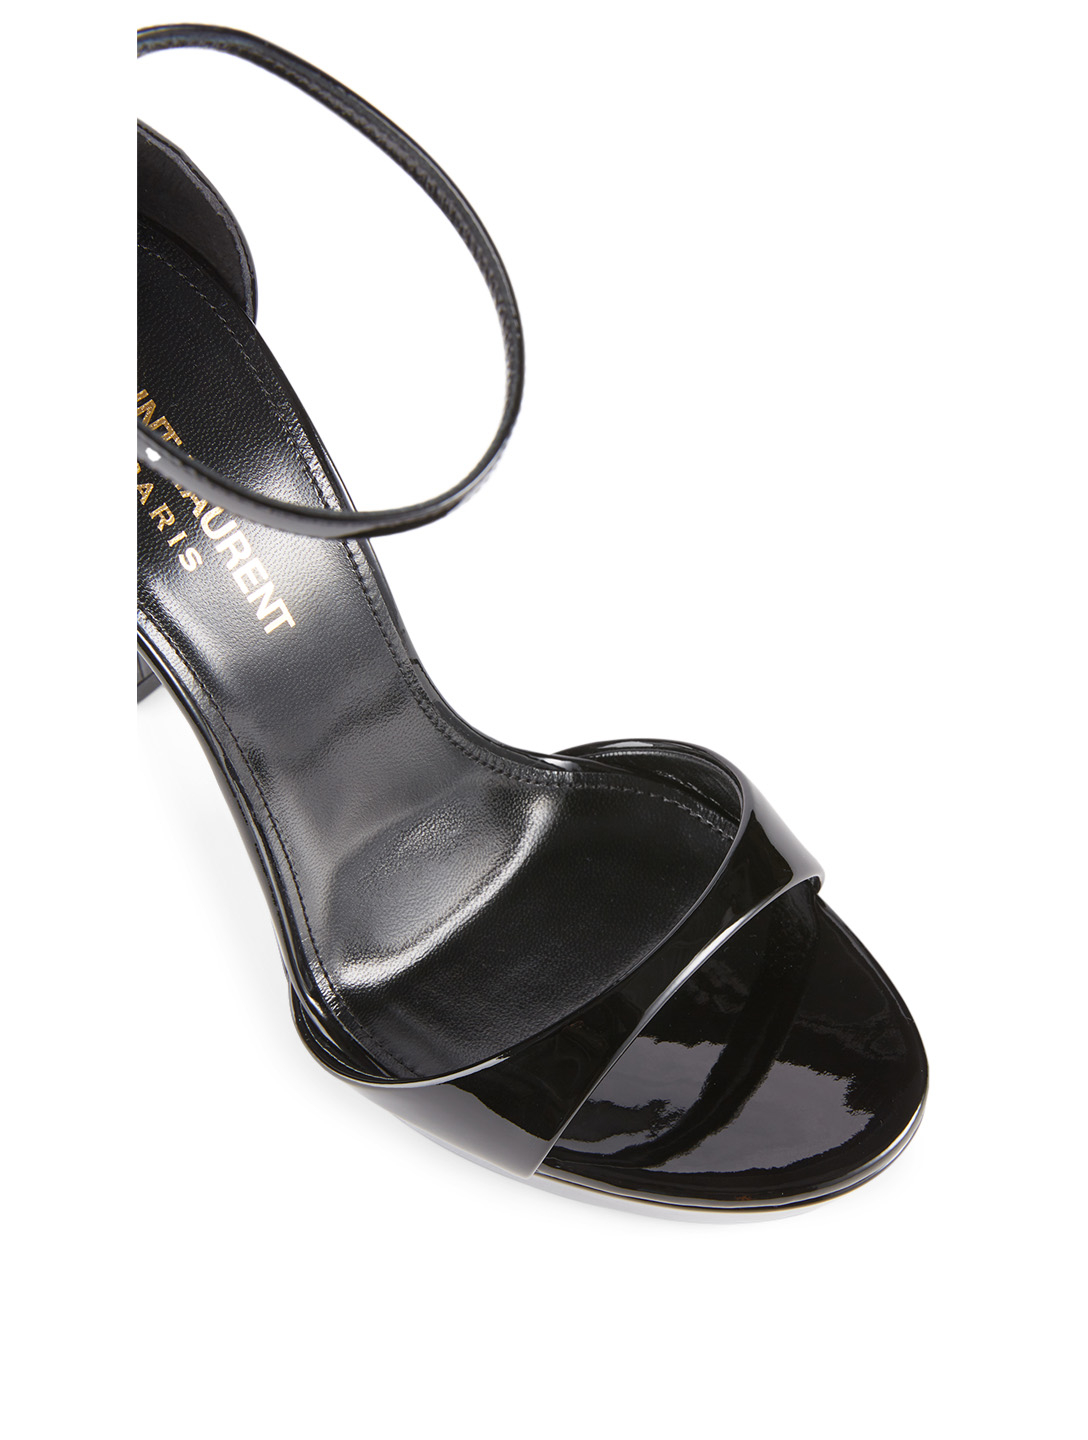 SAINT LAURENT Hall Patent Leather Platform Sandals Women's Black